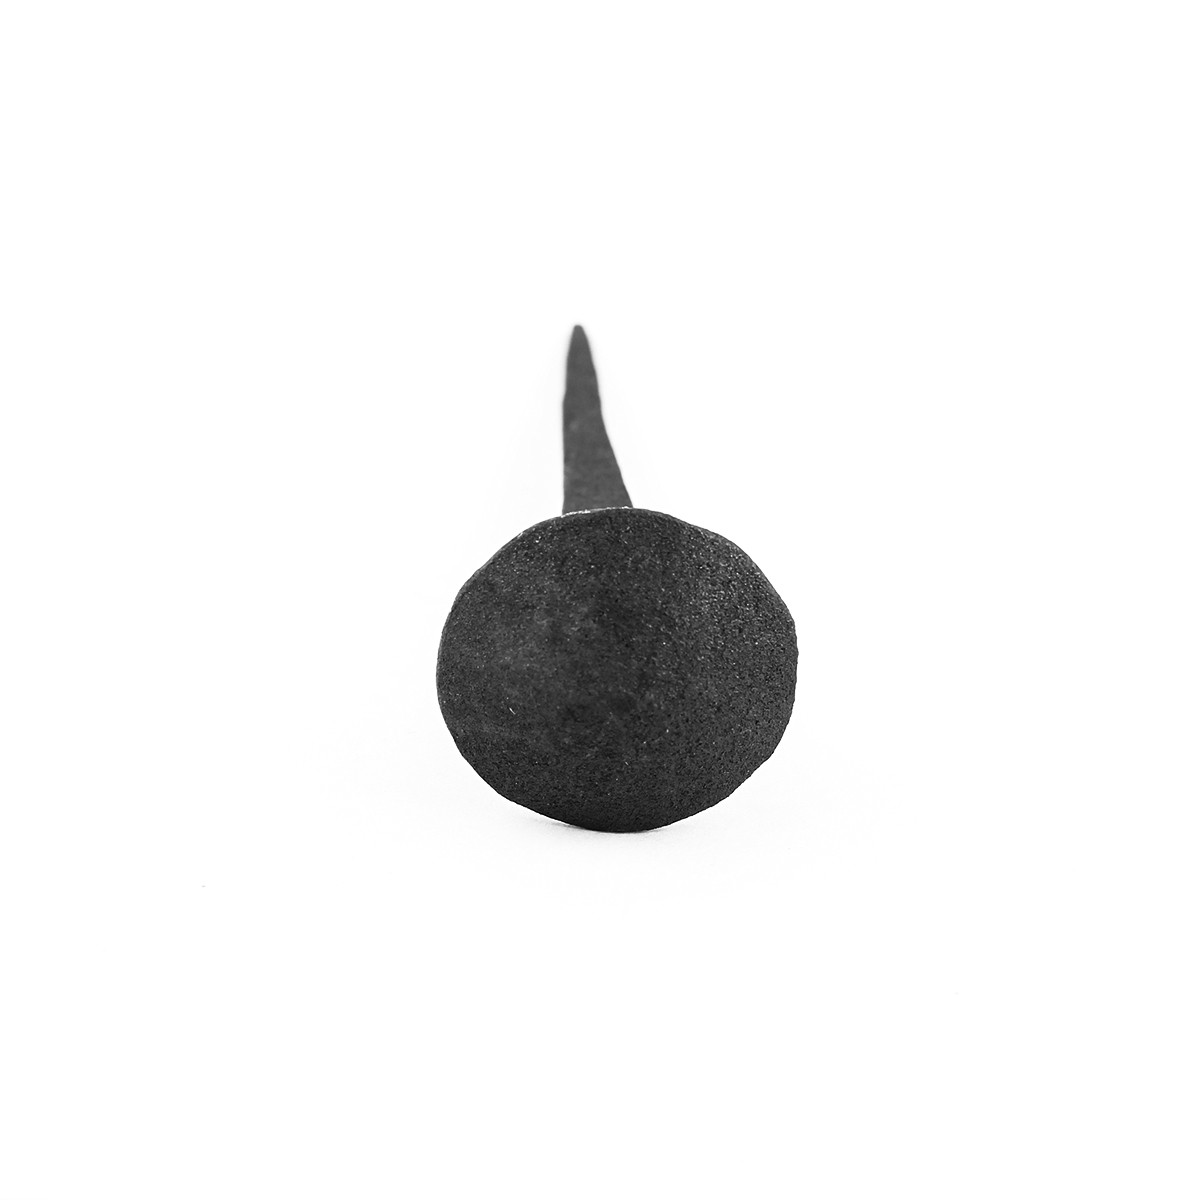 Black Wrought Iron Nails Square Clavos Iron Nails 4 14 X 1 14 Wrought Iron Nails For Wood Black Iron Nails Clavos Decorative Nails